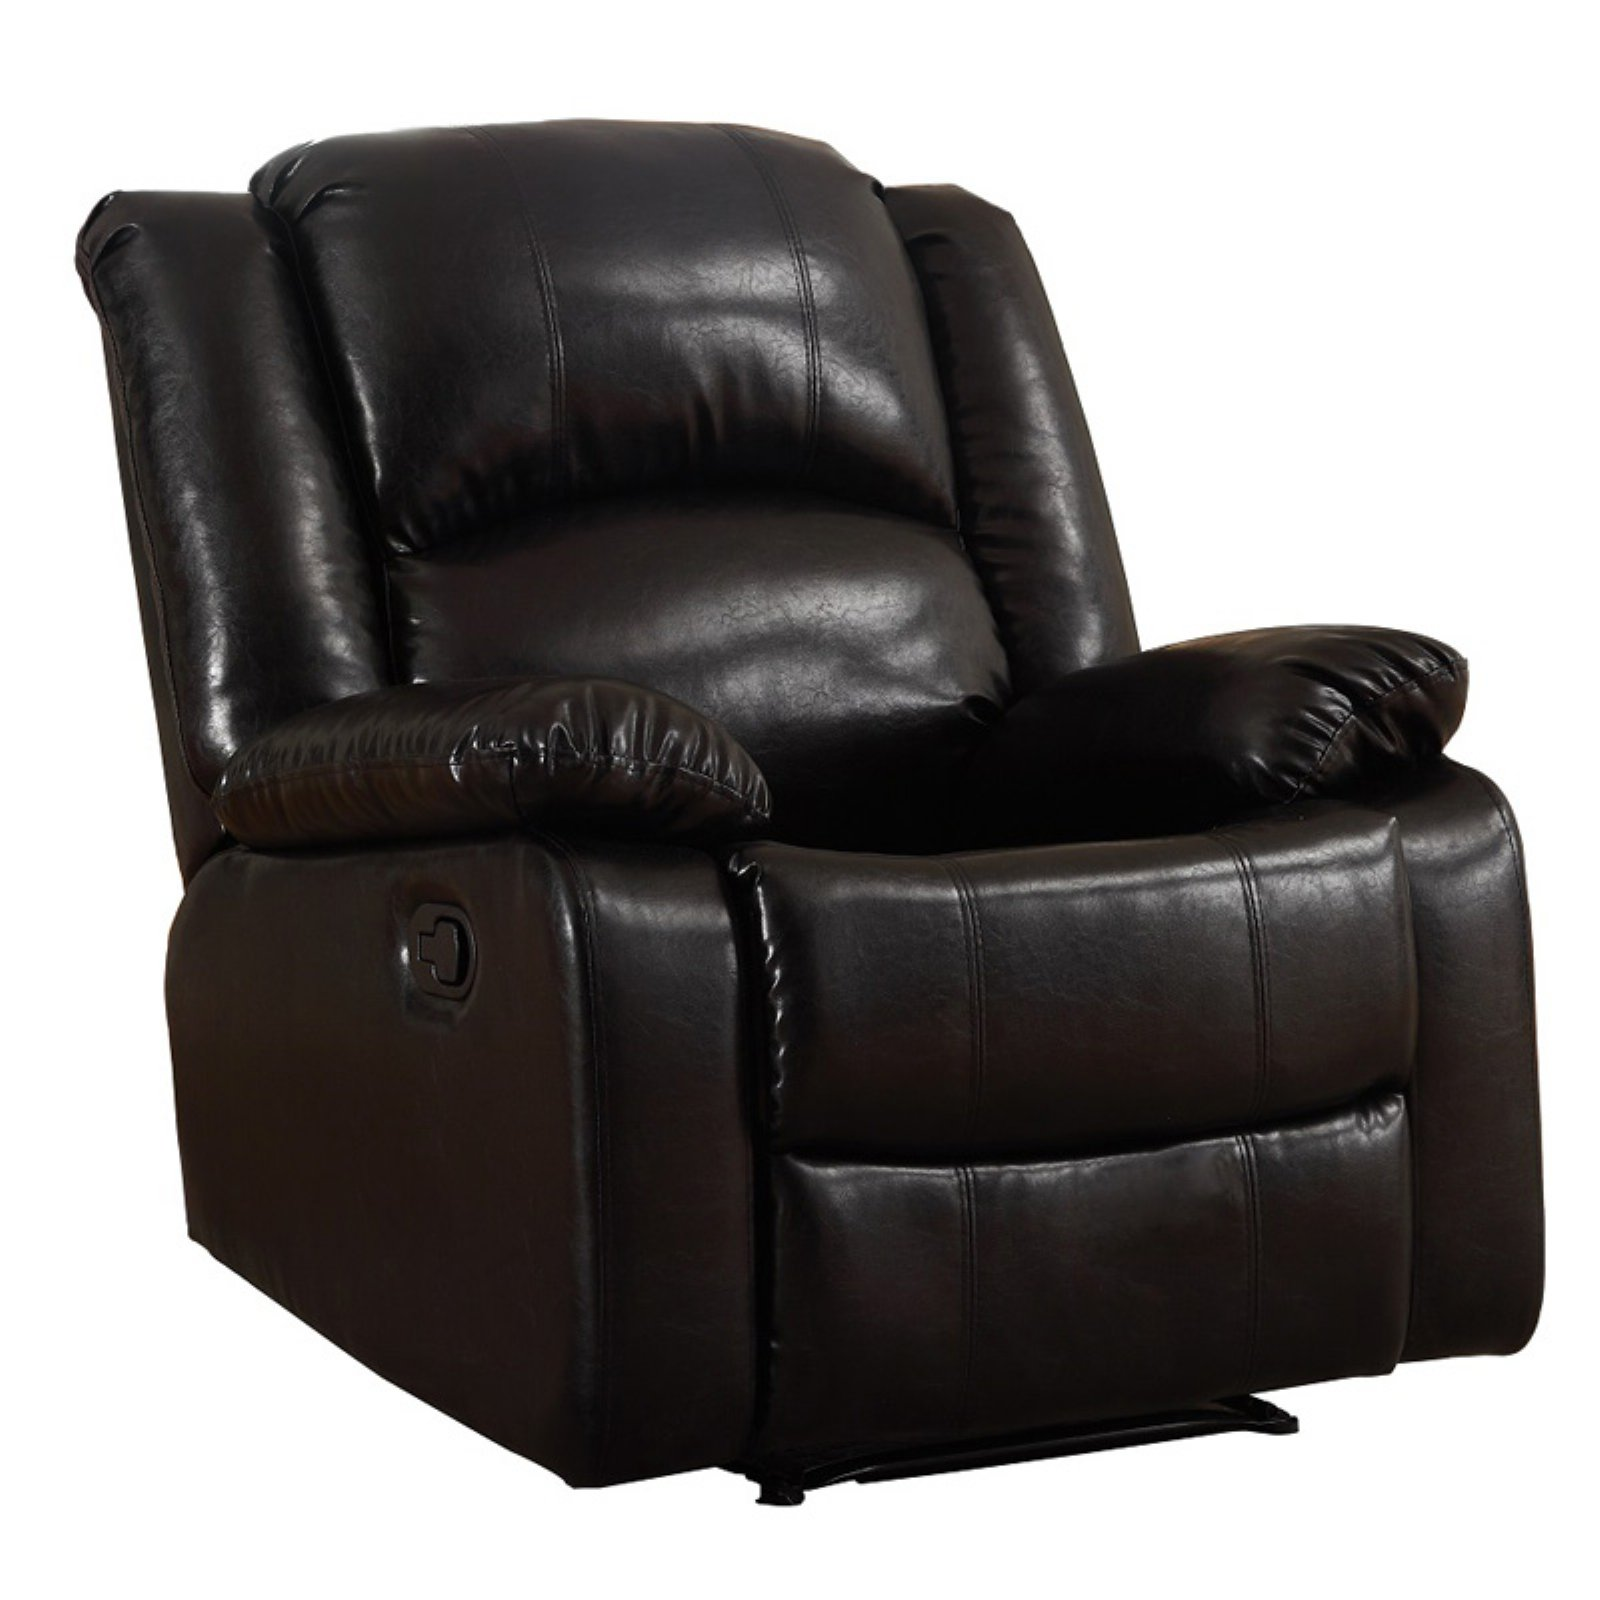 NH Designs Bonded Leather Glider Recliner